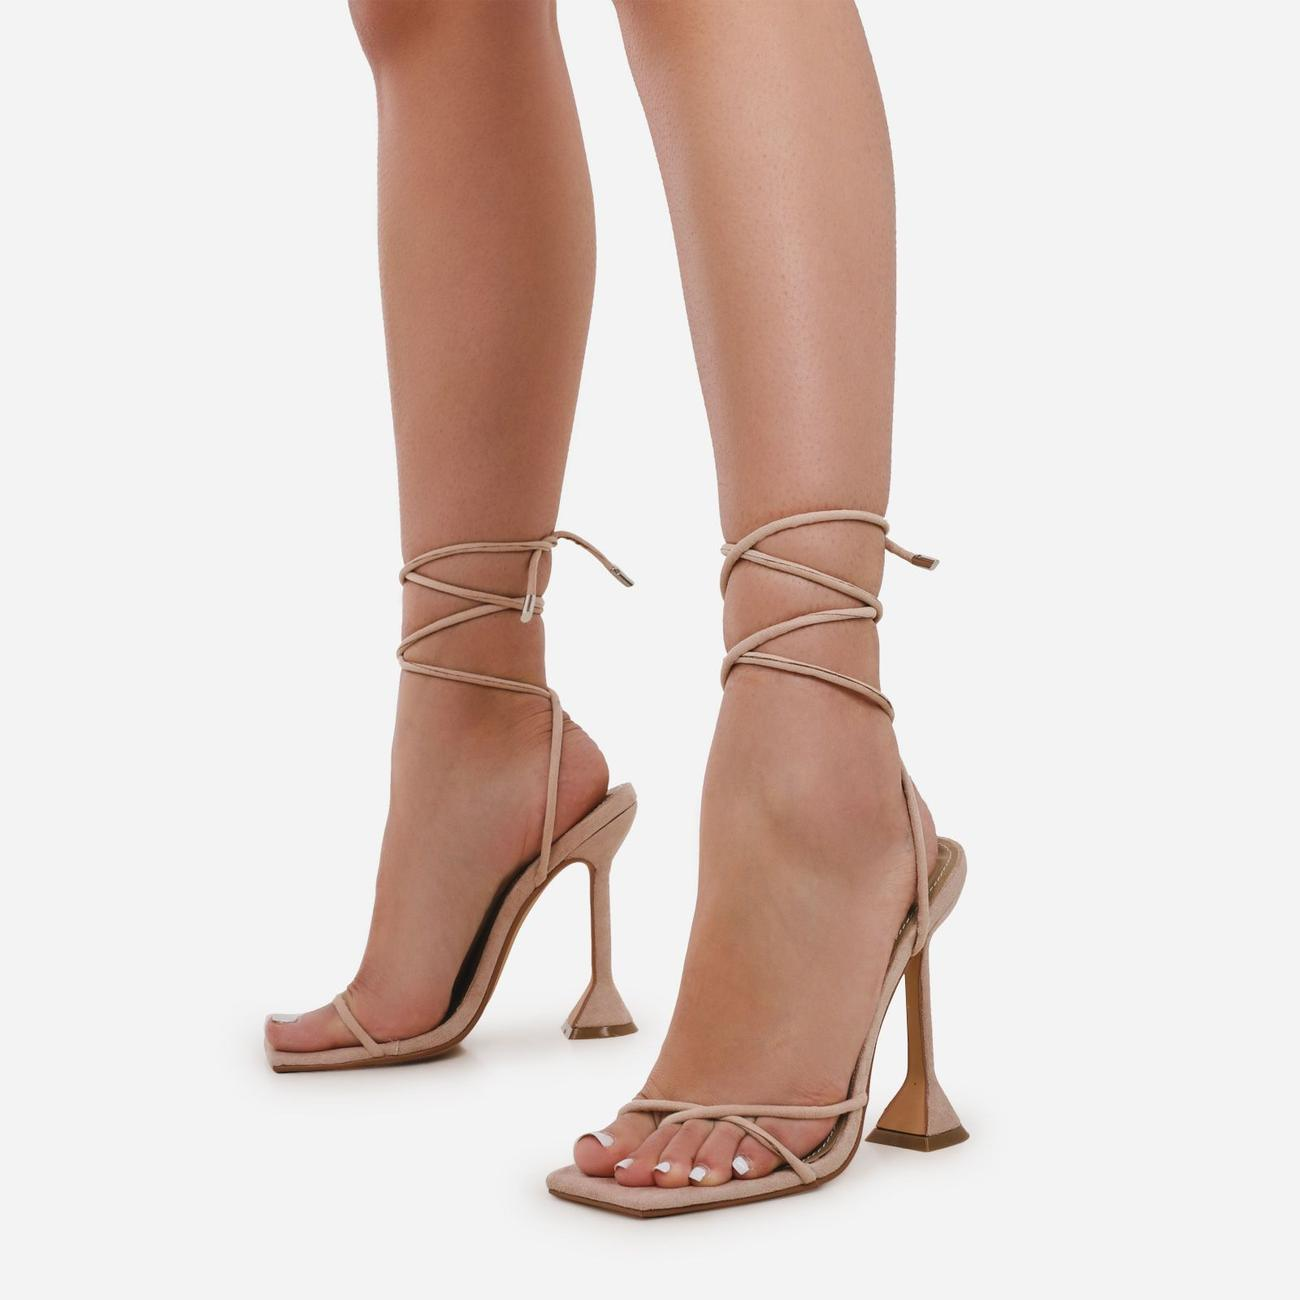 Emily Square Toe Lace Up Pyramid Heel In Nude Faux Suede Image 2